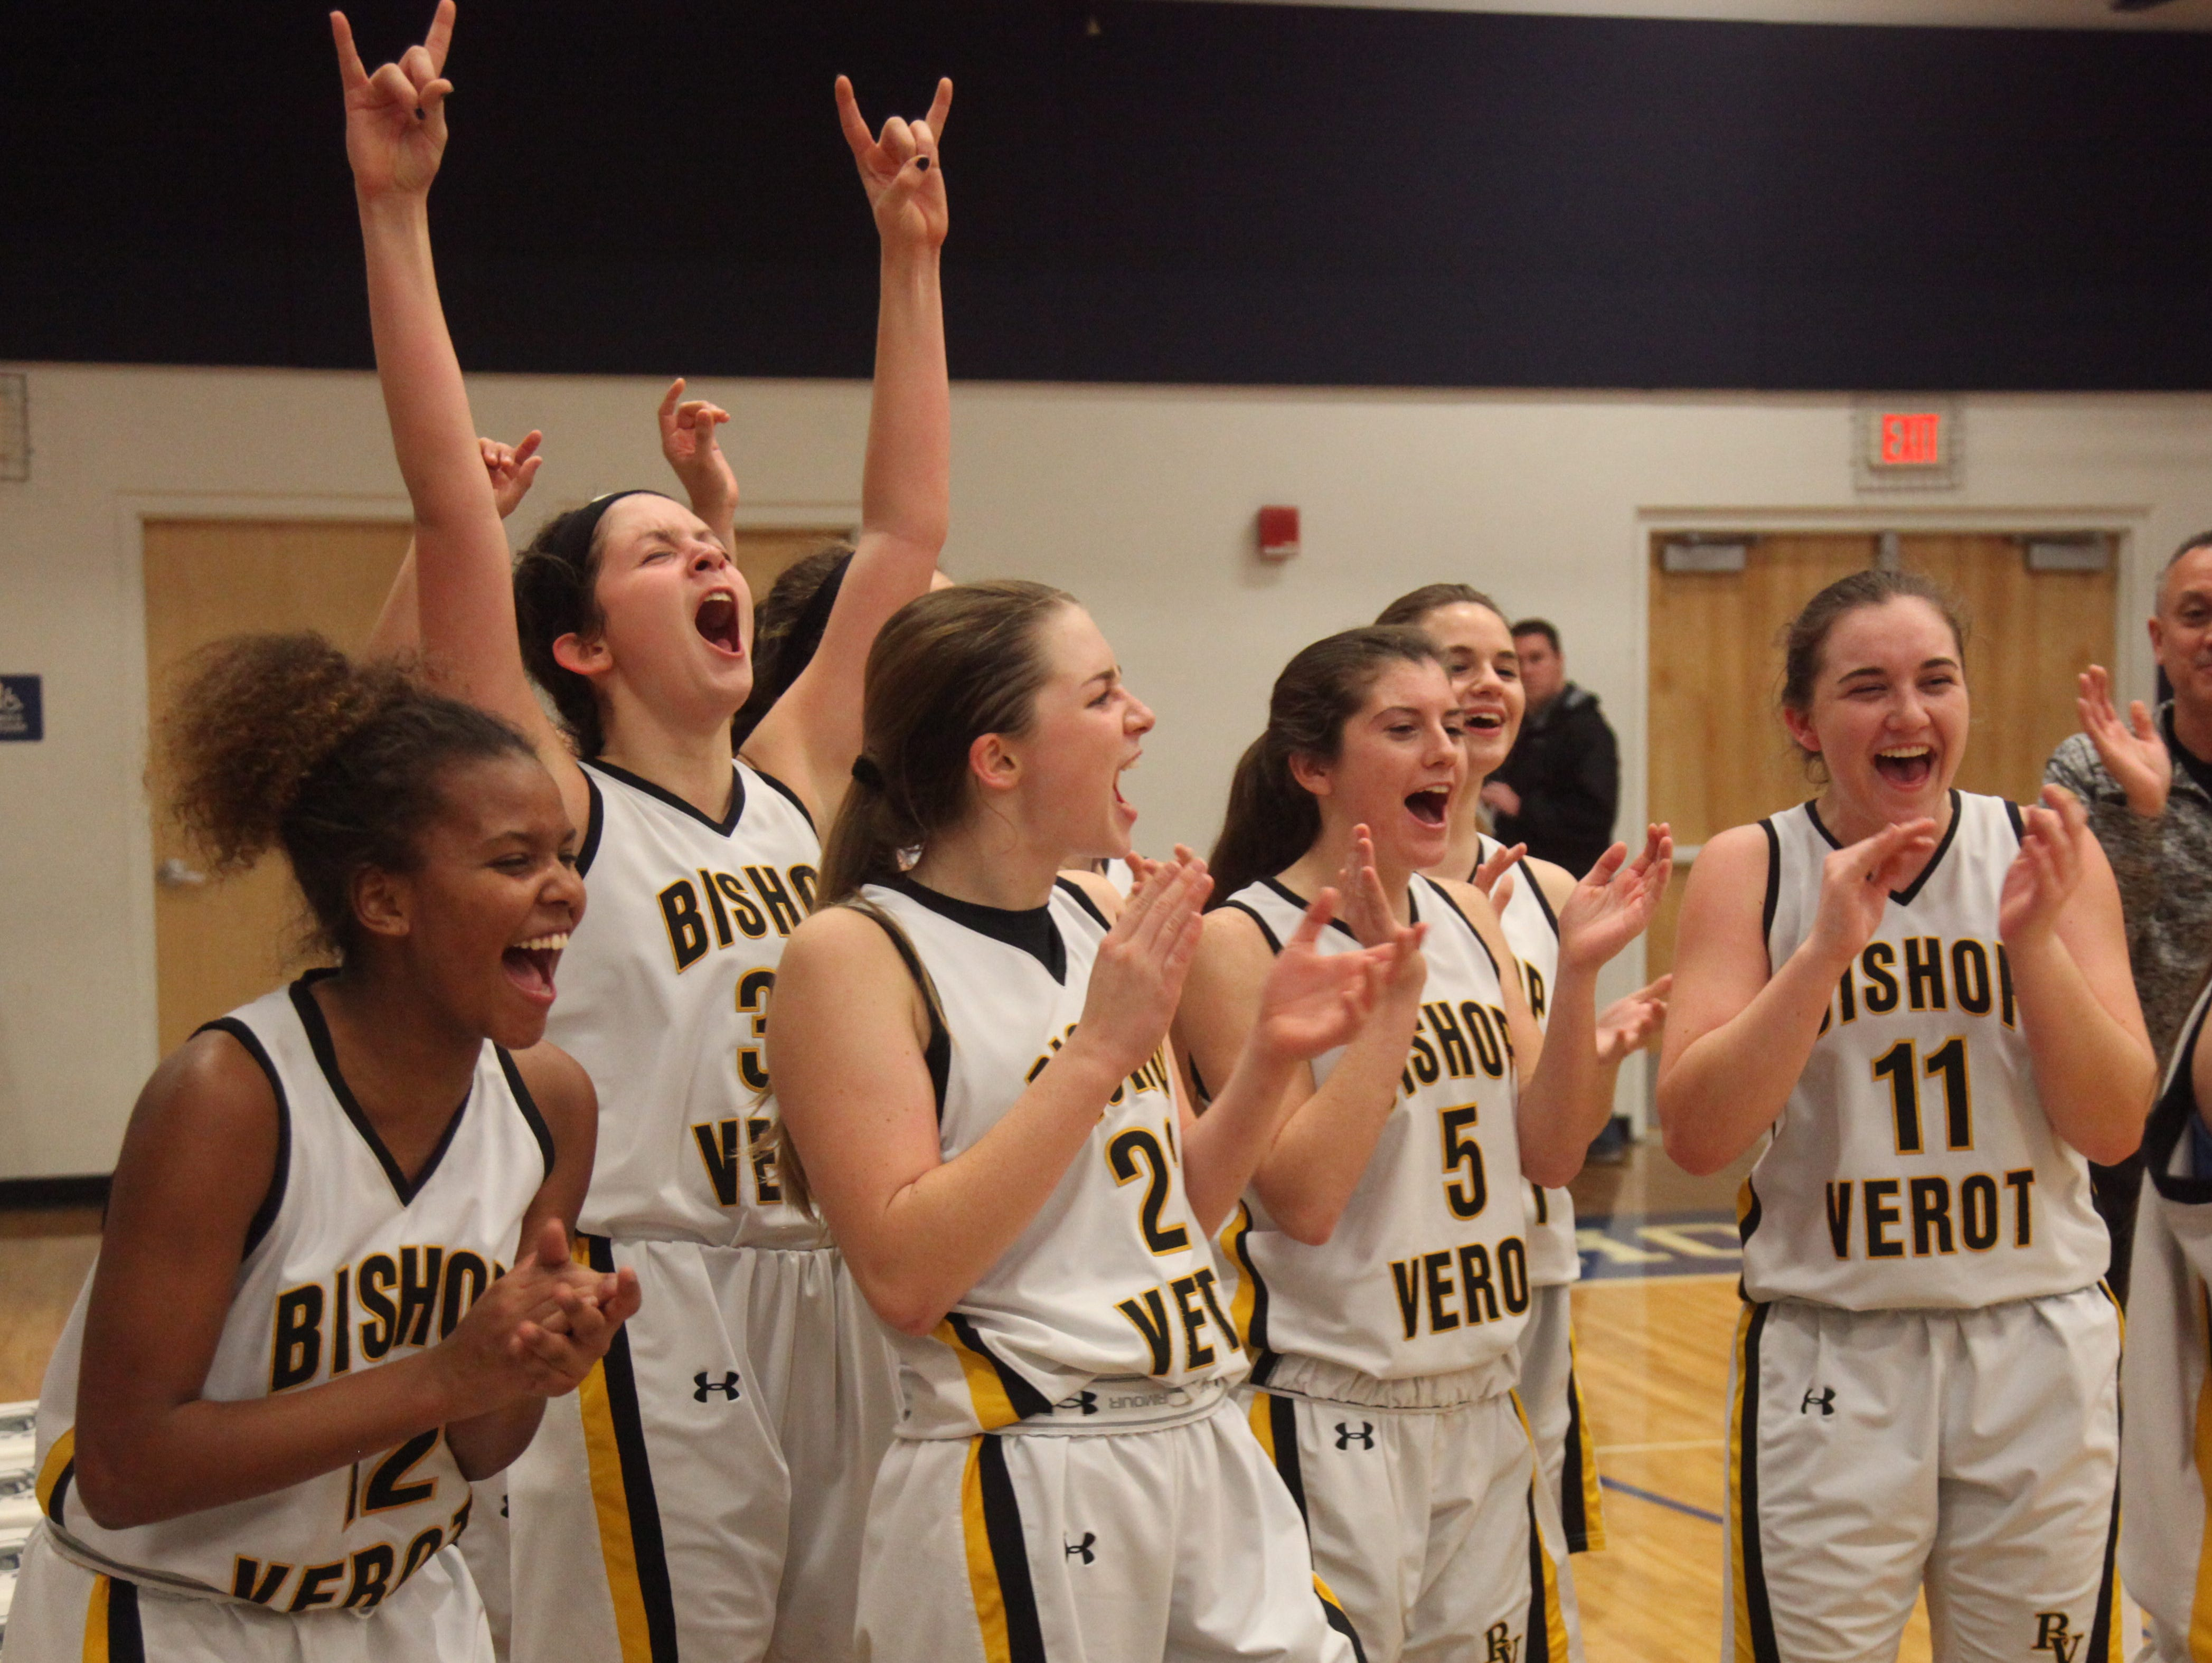 Members of the Bishop Verot High School girls basketball team celebrate after defeating Gateway Charter in the District 4A-10 finals on Thursday at Oasis High School.